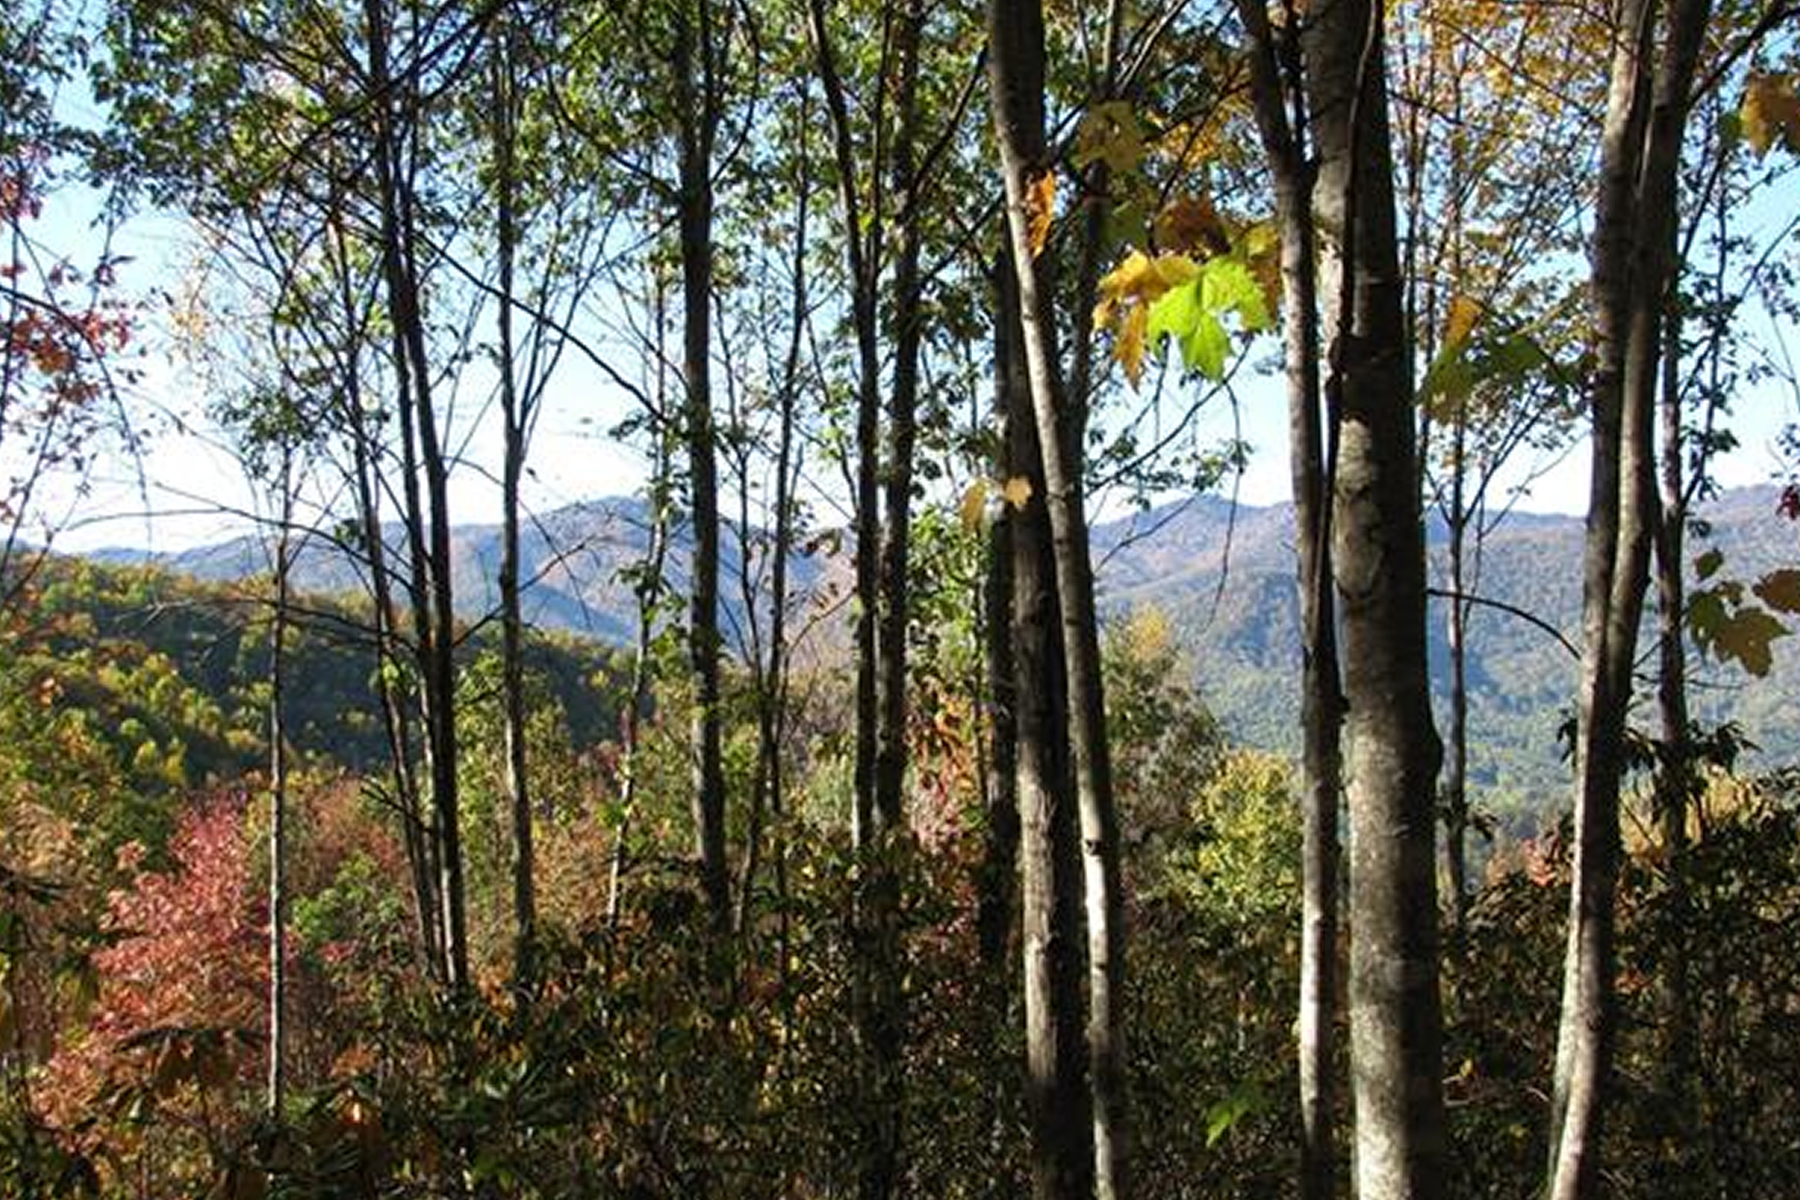 Land for Sale at BALSAM MOUNTAIN PRESERVE Lot 239 Down The Hill Rd Sylva, North Carolina, 28779 United States